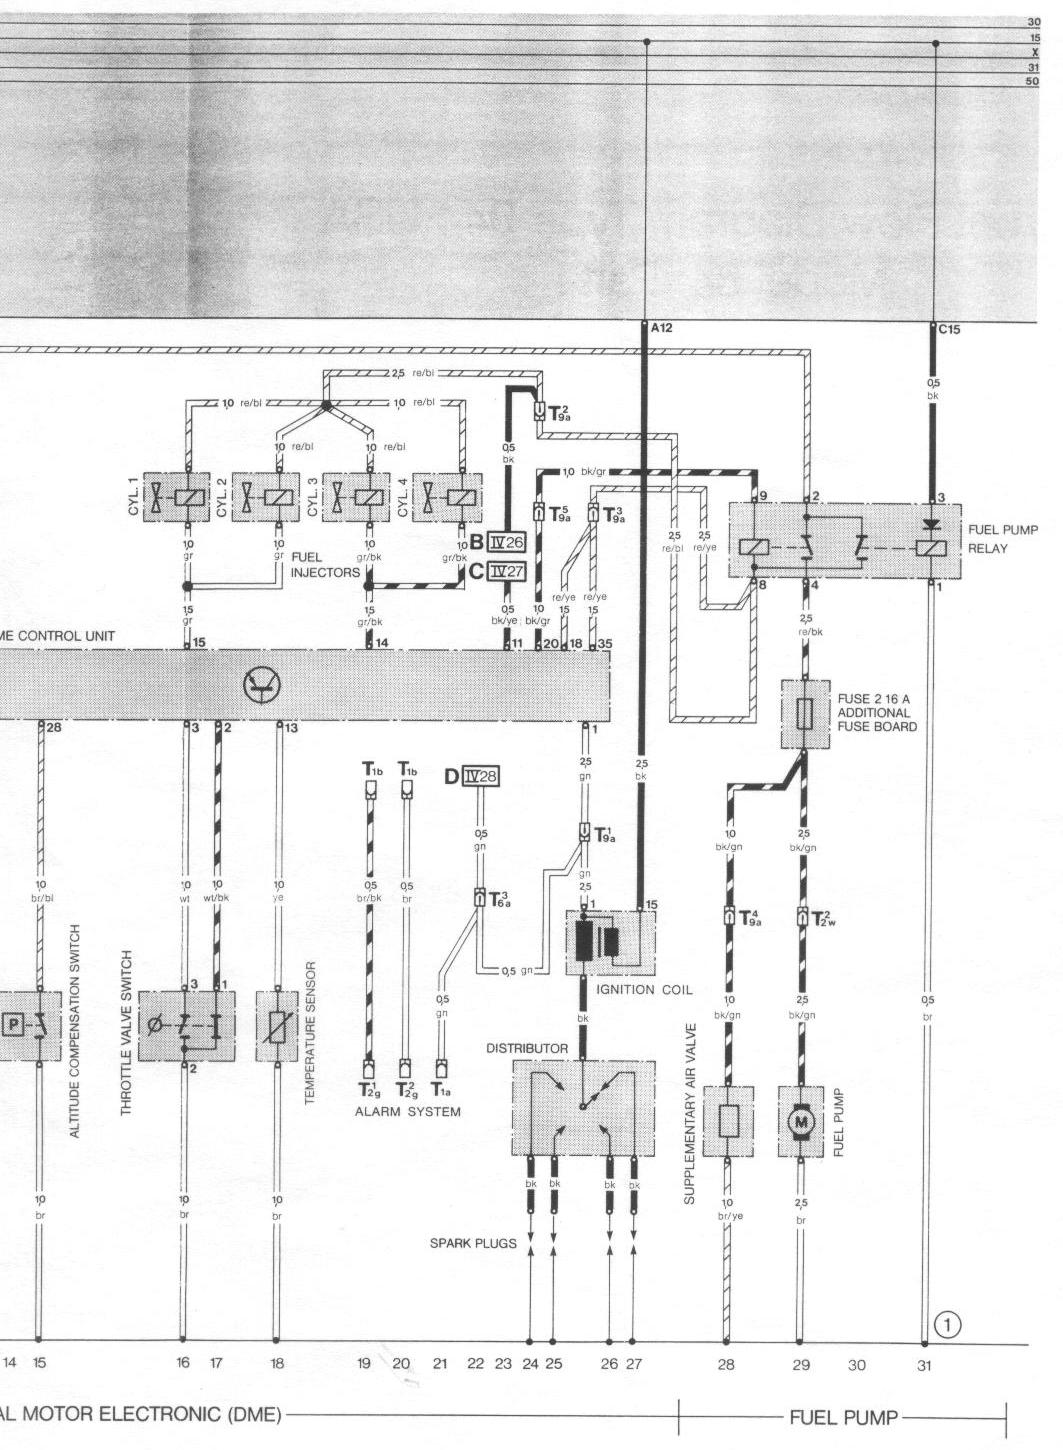 944_84_1_2 1983 porsche 944 wiring diagram porsche sensor diagram \u2022 wiring 1987 porsche 944 fuse box diagram at n-0.co